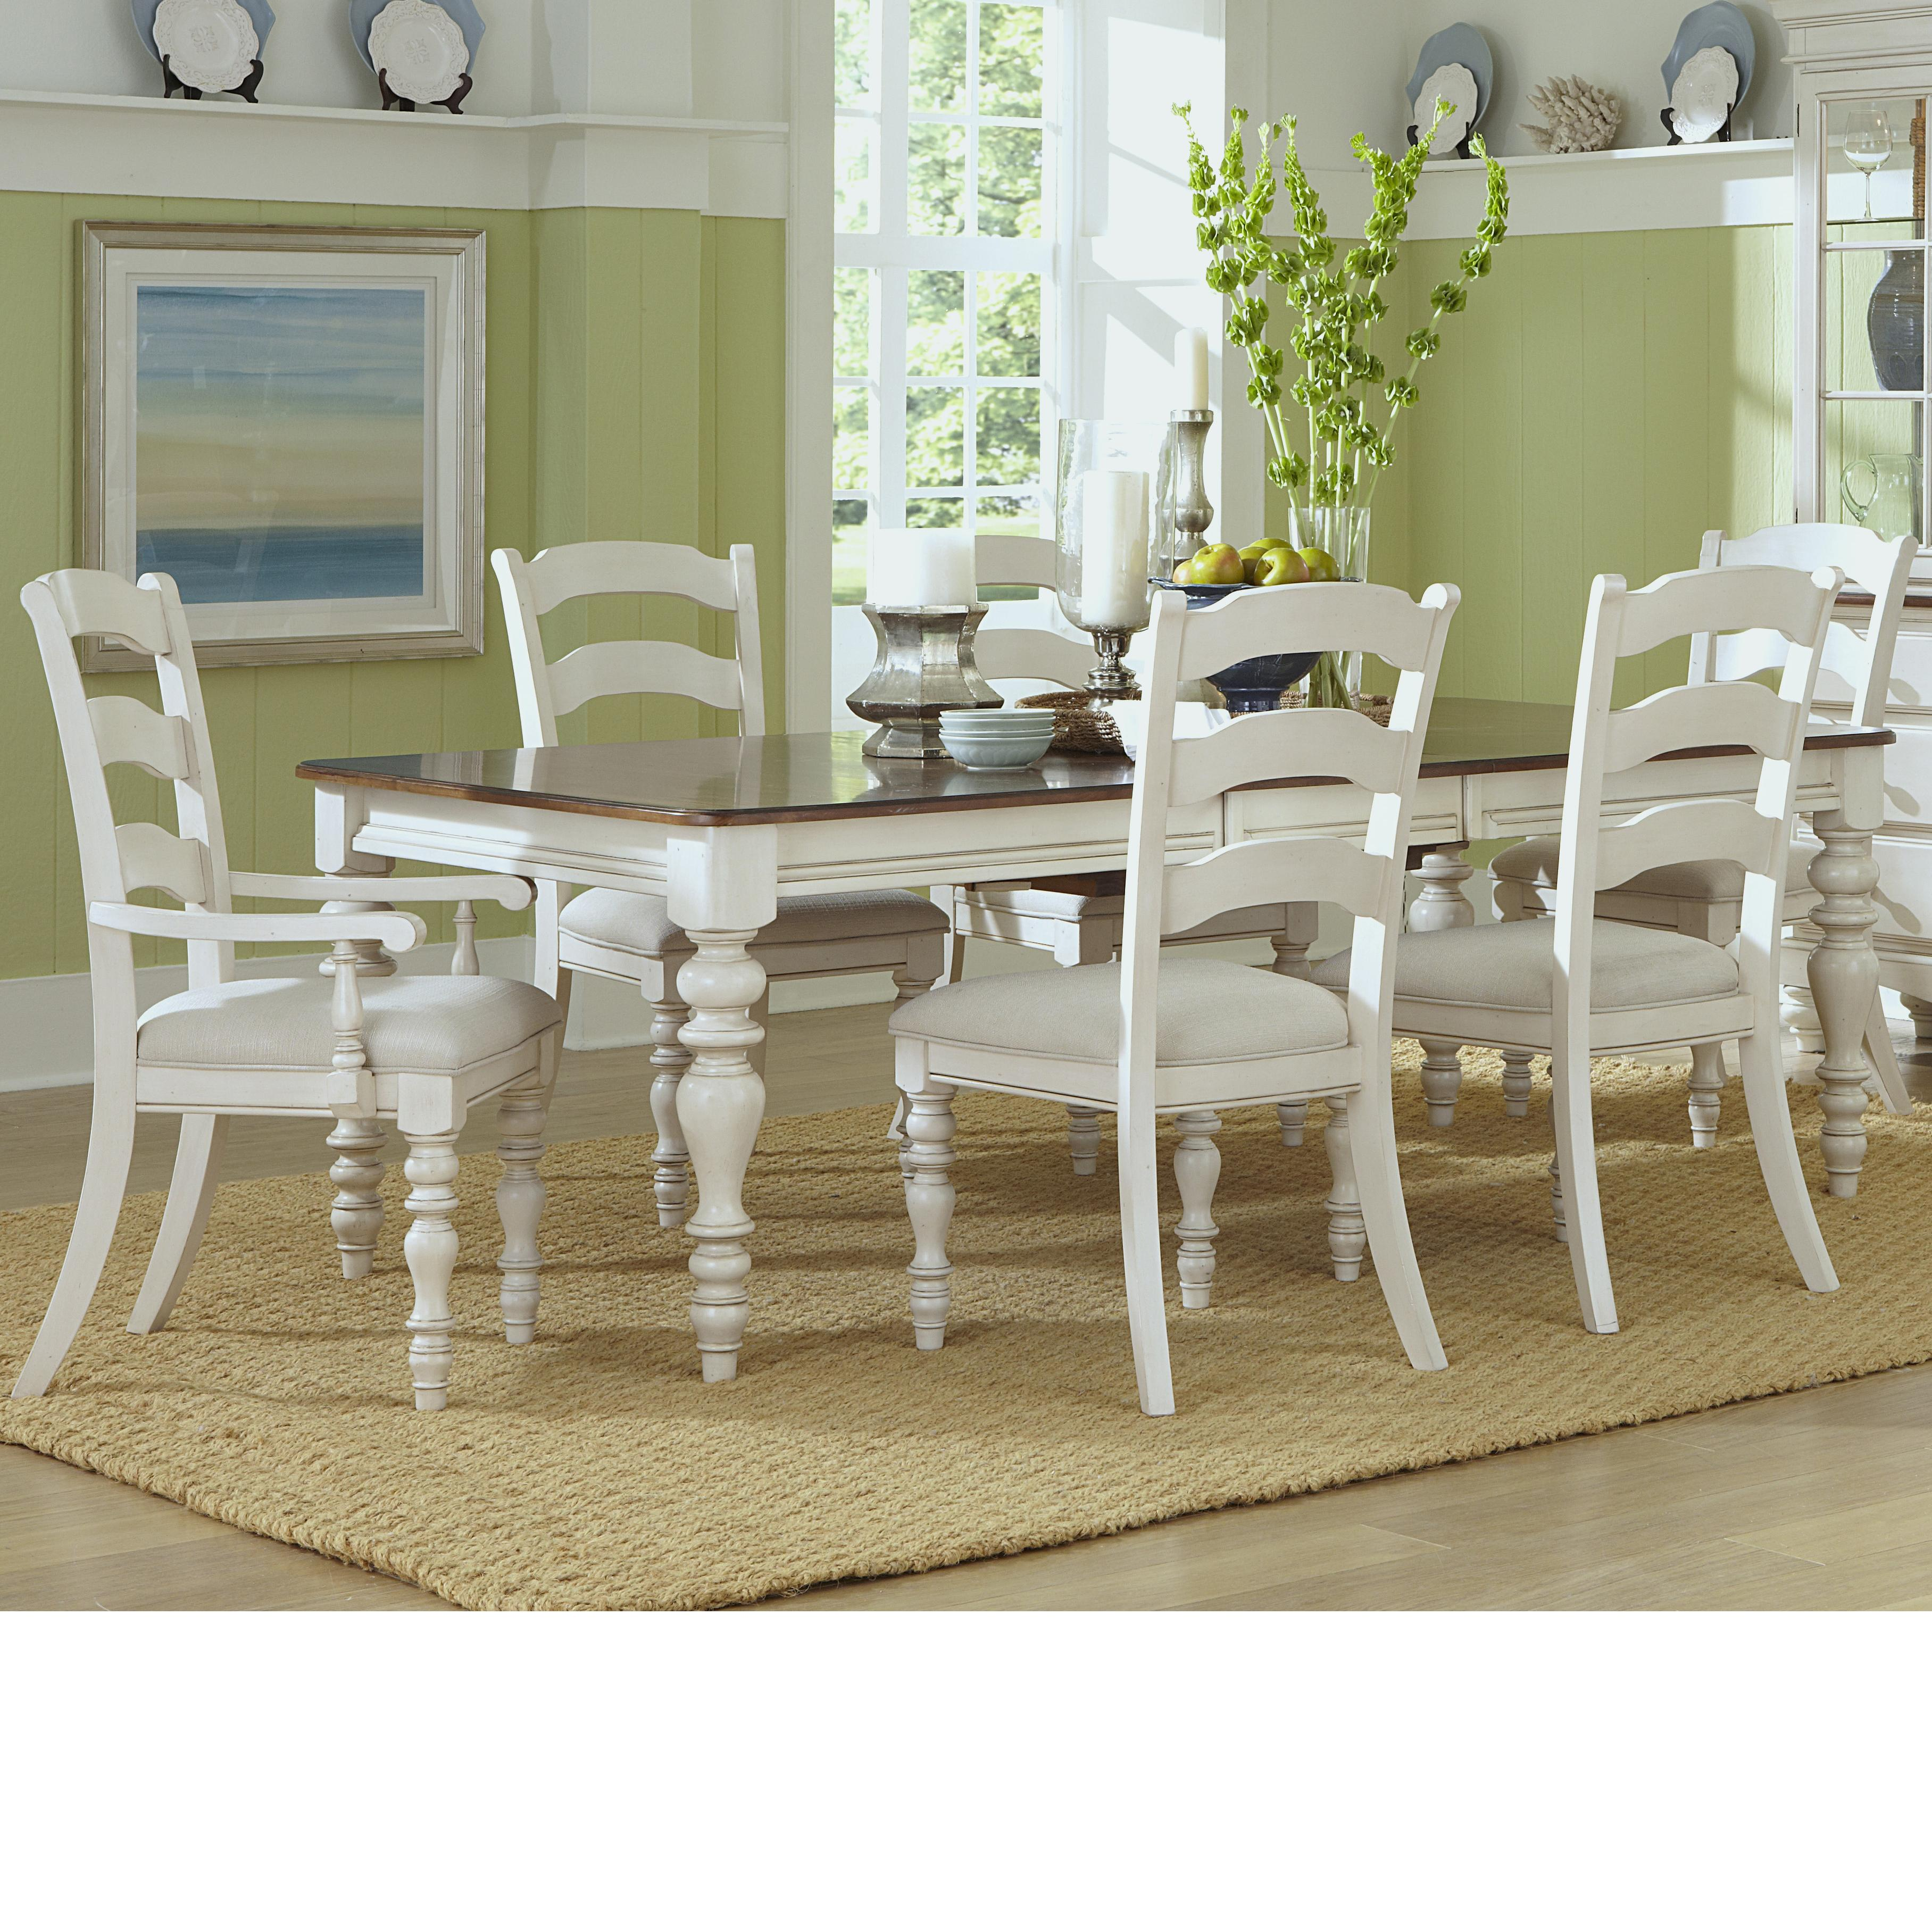 Hillsdale Pine Island Dining Table And Chair Set   Item Number: 5265 819+